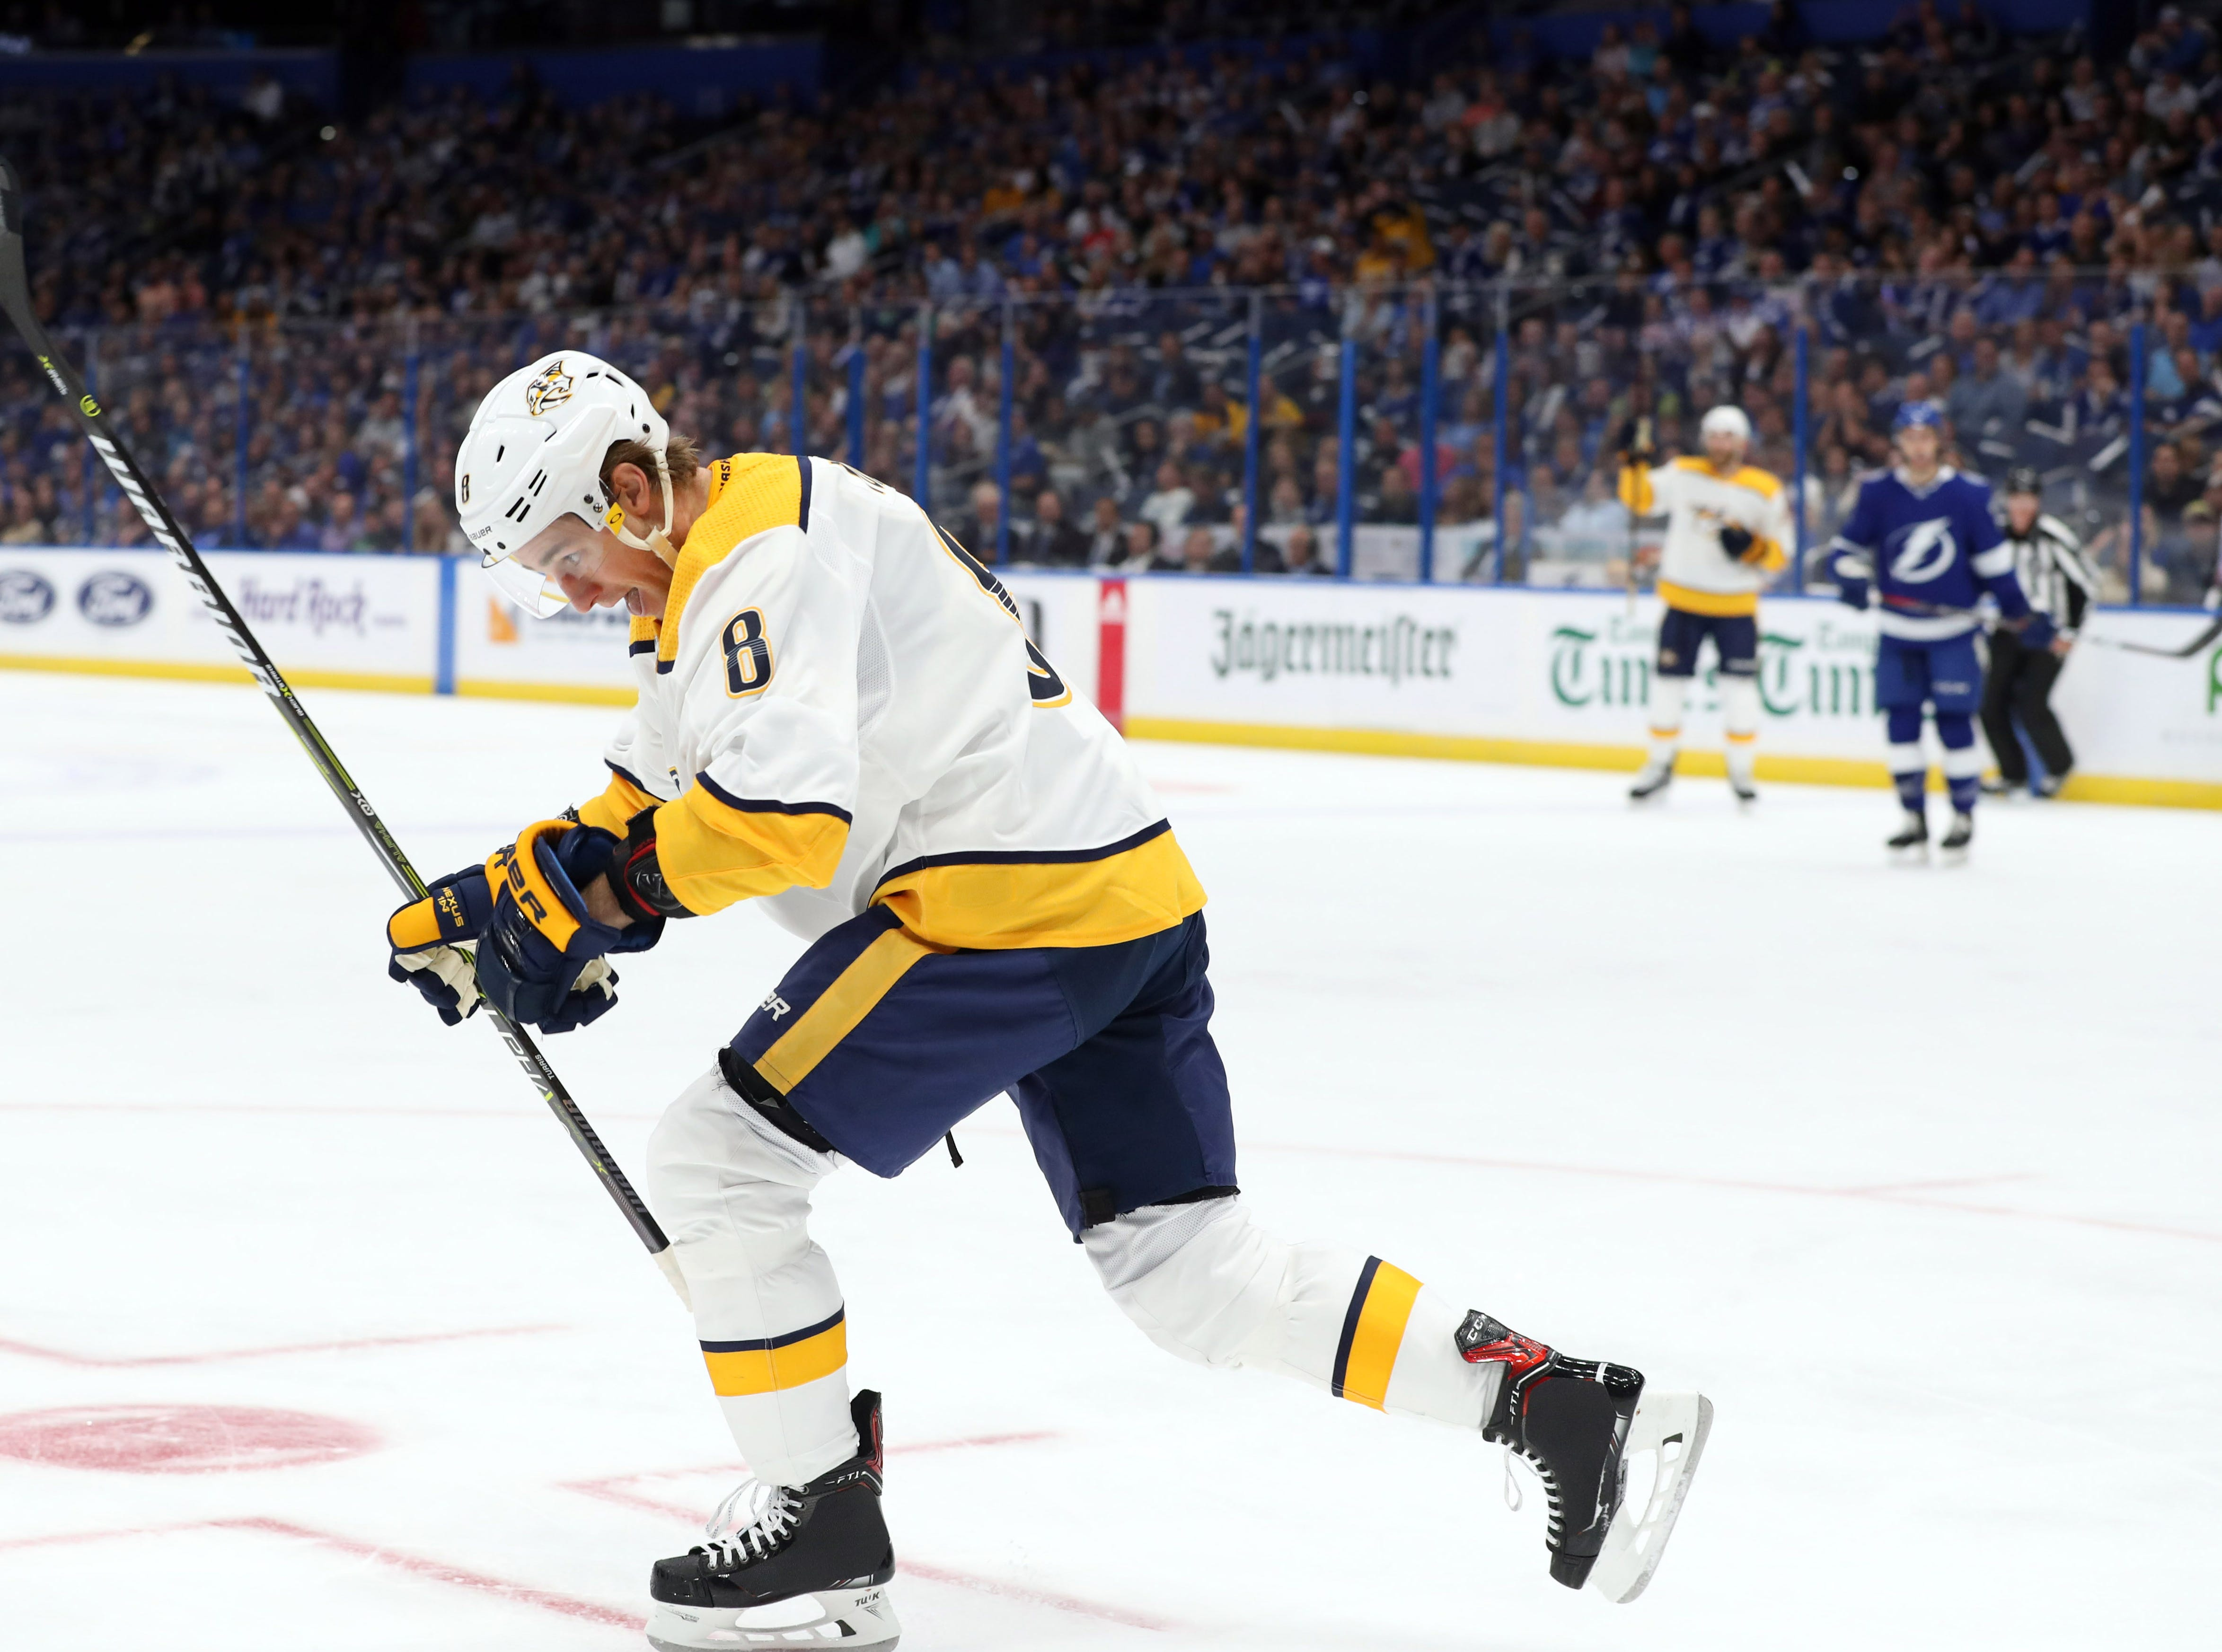 Nashville Predators center Kyle Turris (8) celebrates his goal against the Tampa Bay Lightning during the first period at Amalie Arena.